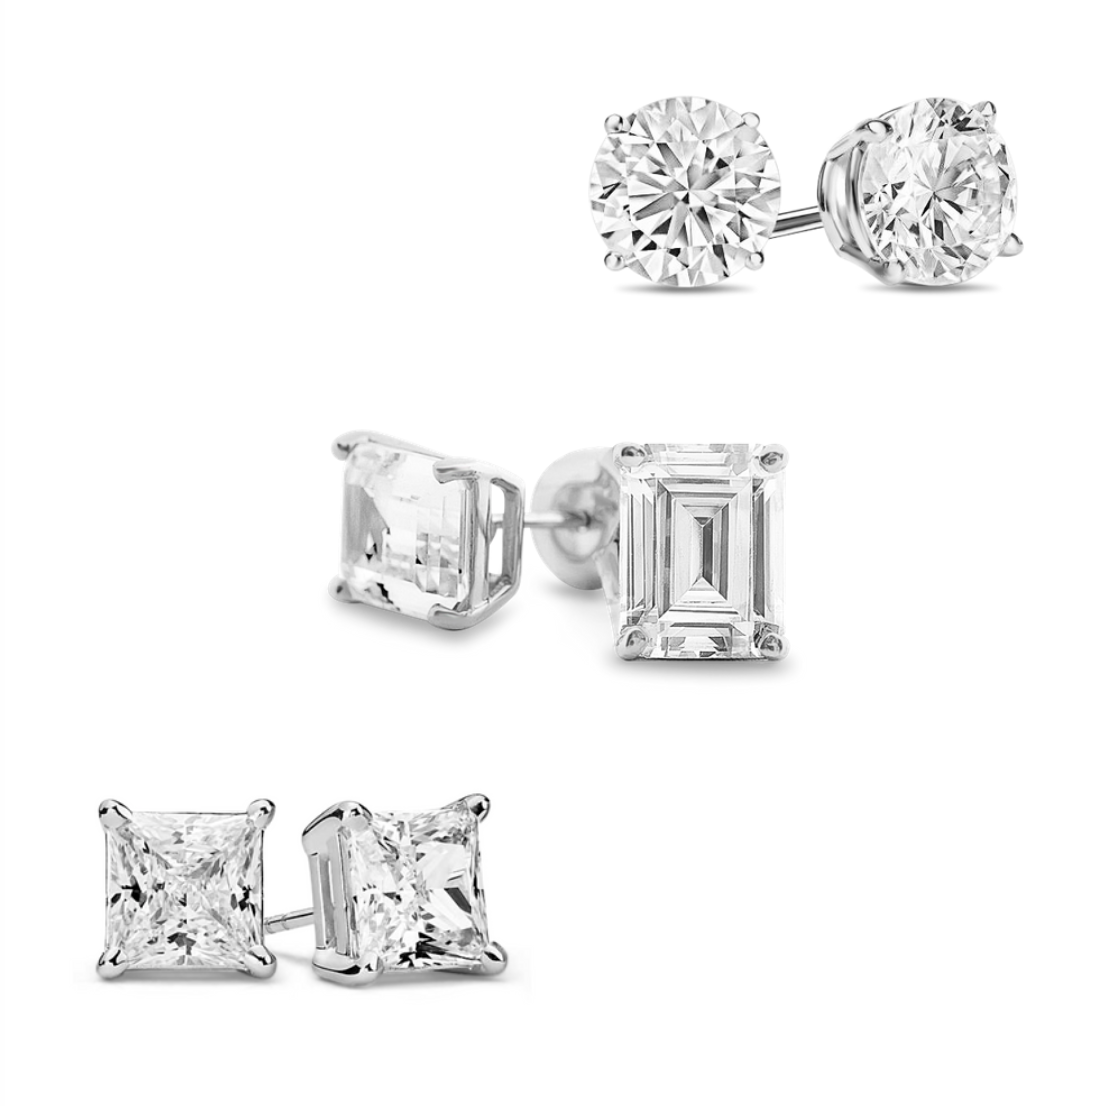 [PROMO SET] Giovanni Lilith Hamilton Diamond Earrings Set